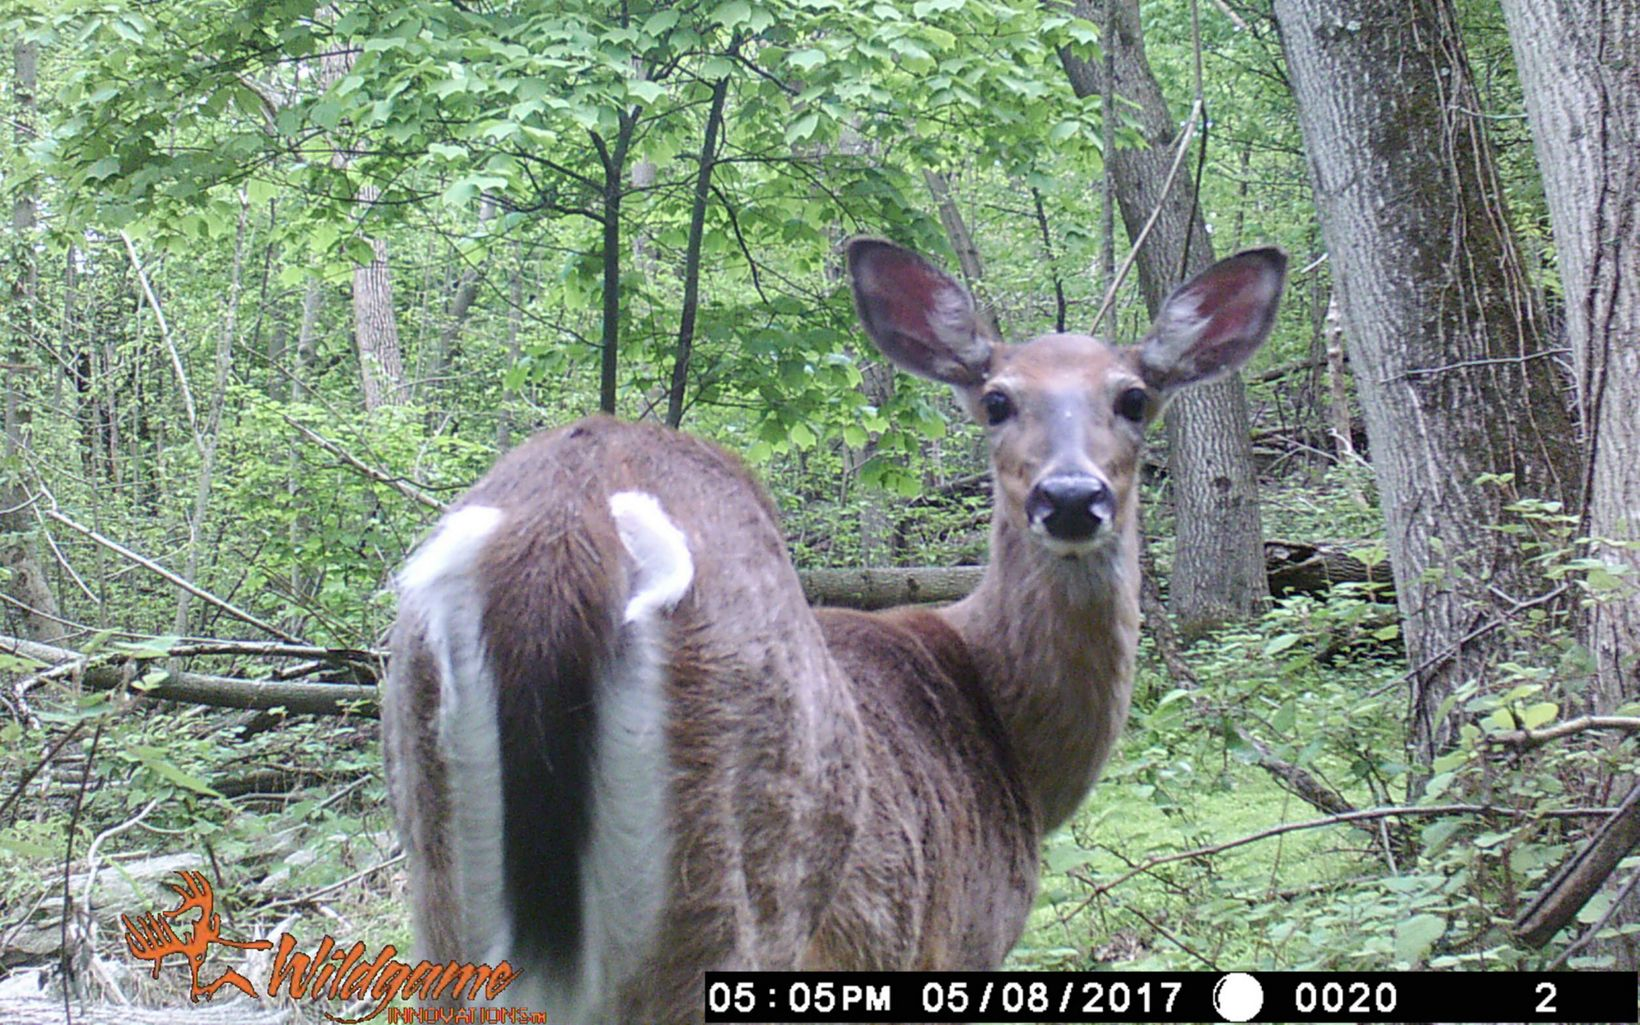 A deer perks its ears as it turns to look around.